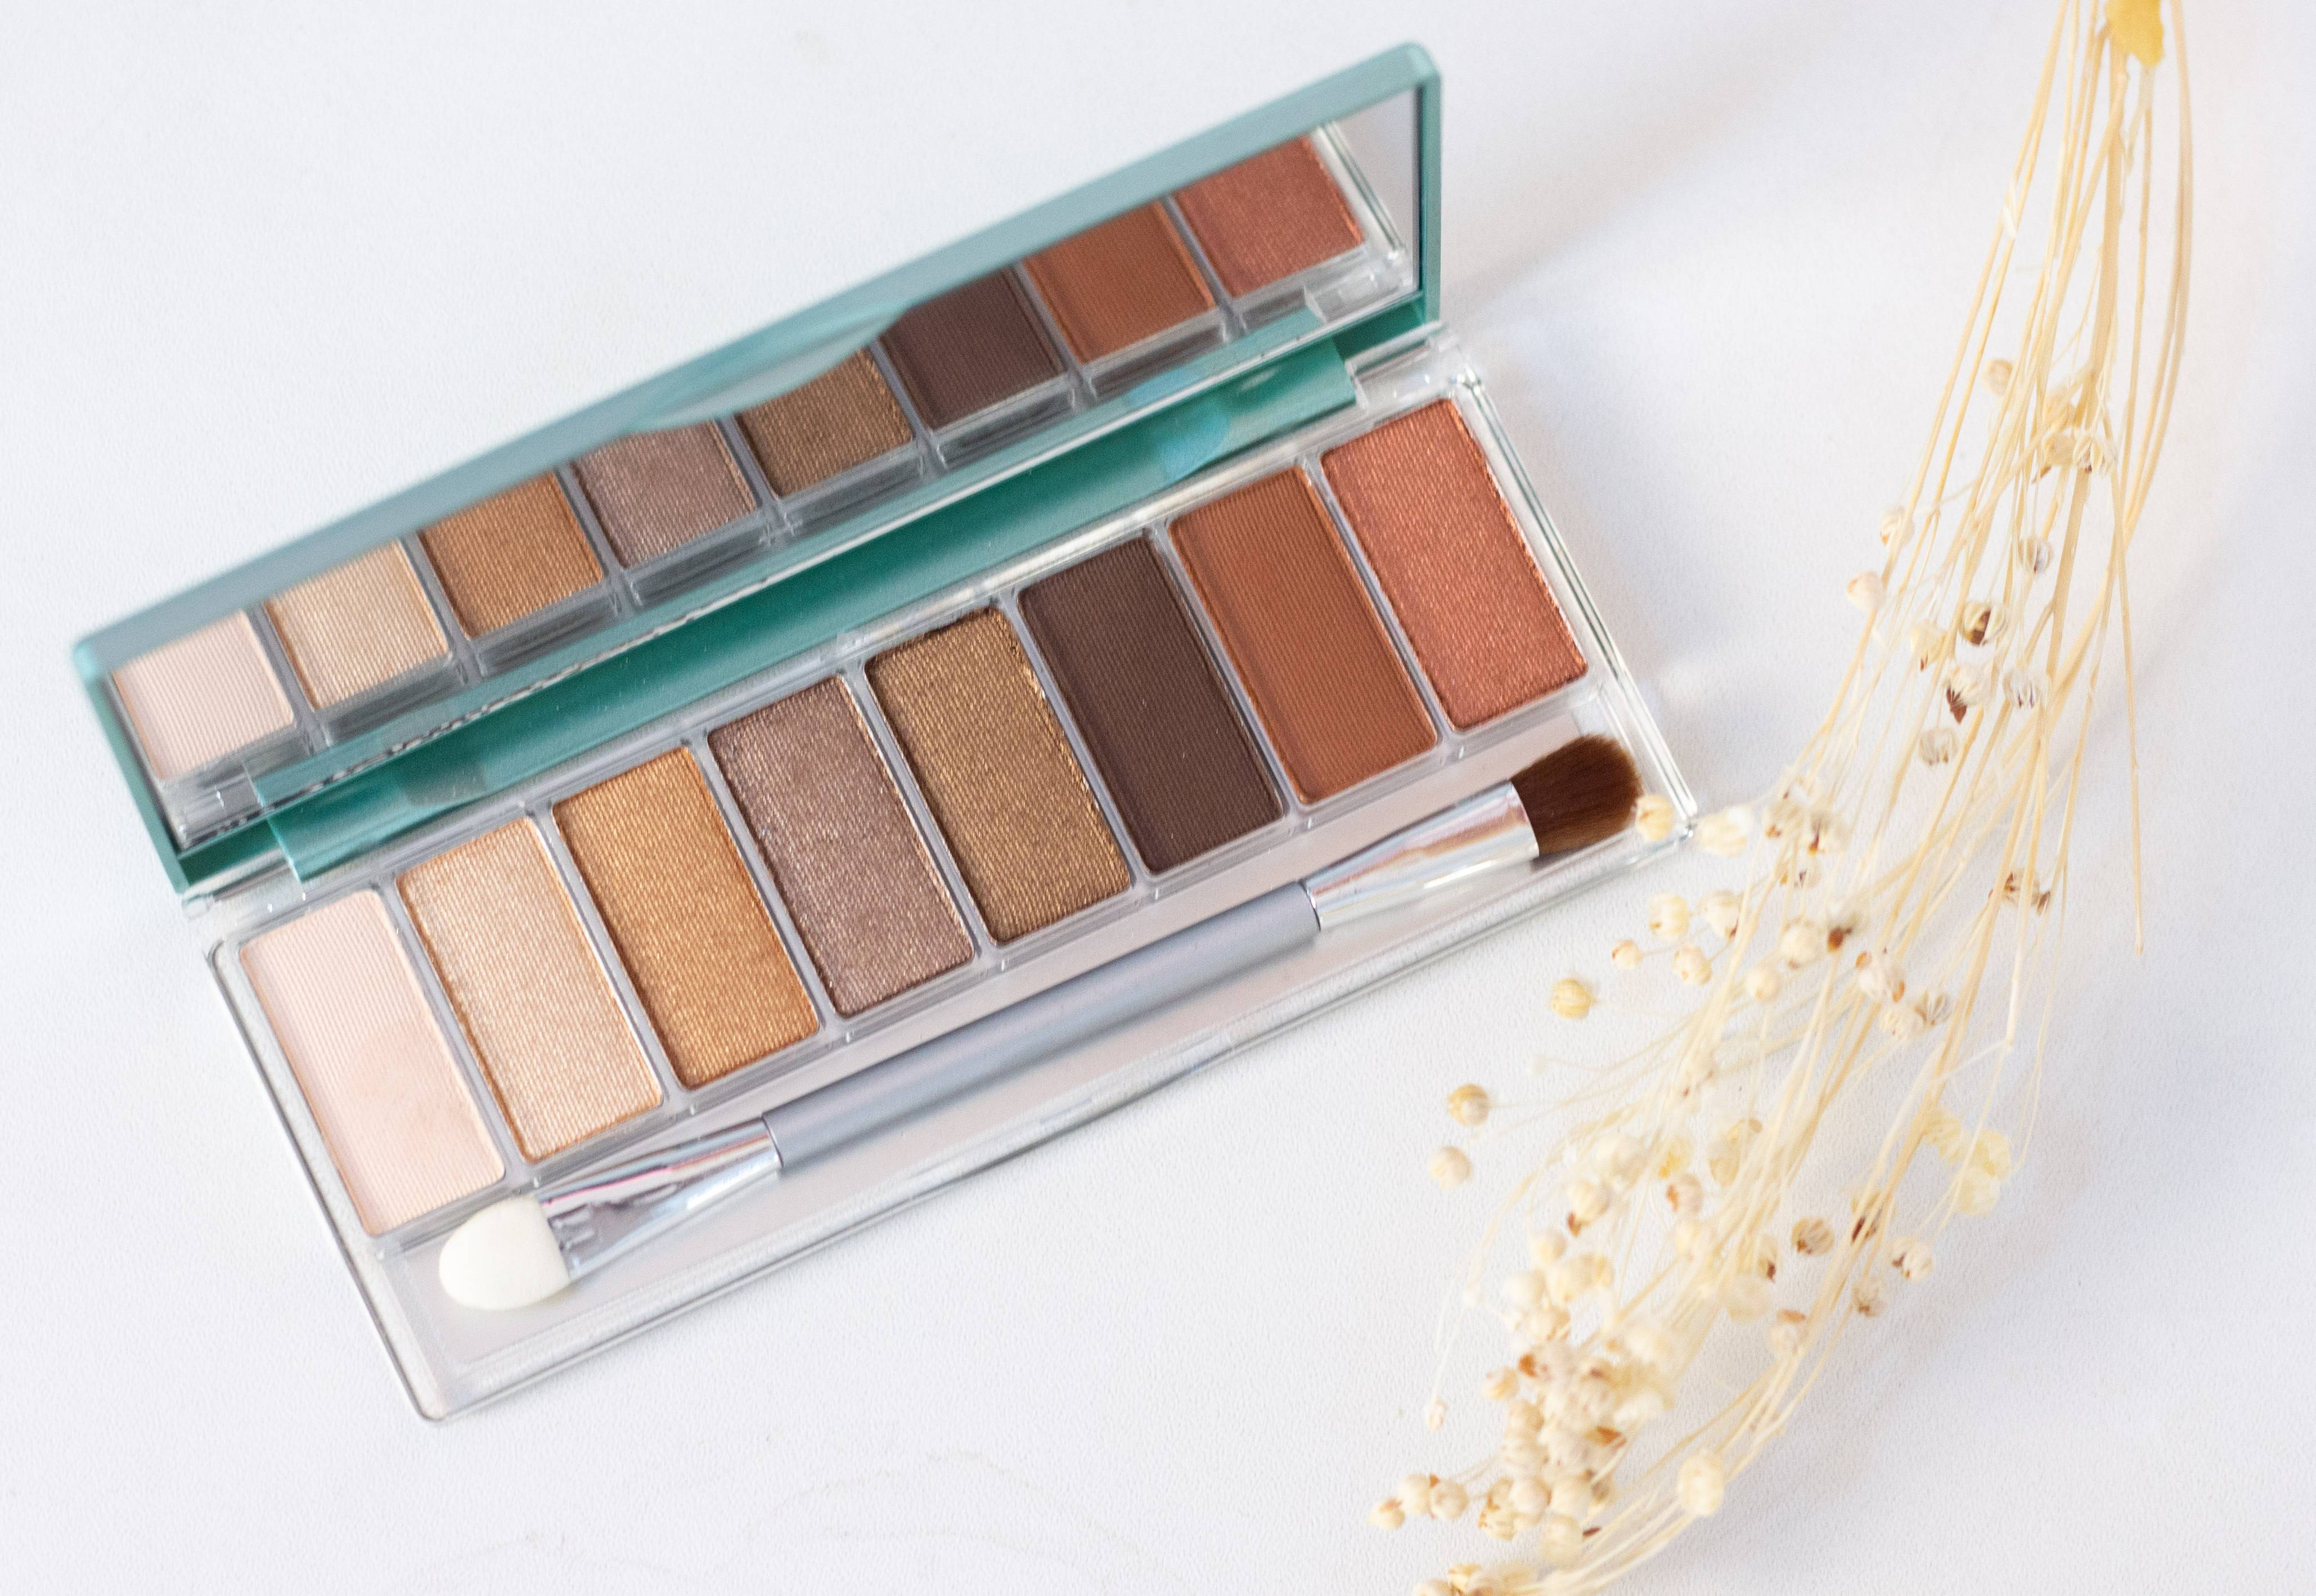 Review Wardah Exclusive Series : Flawless Cover Cushion, Eyeshadow Palette & Blush On